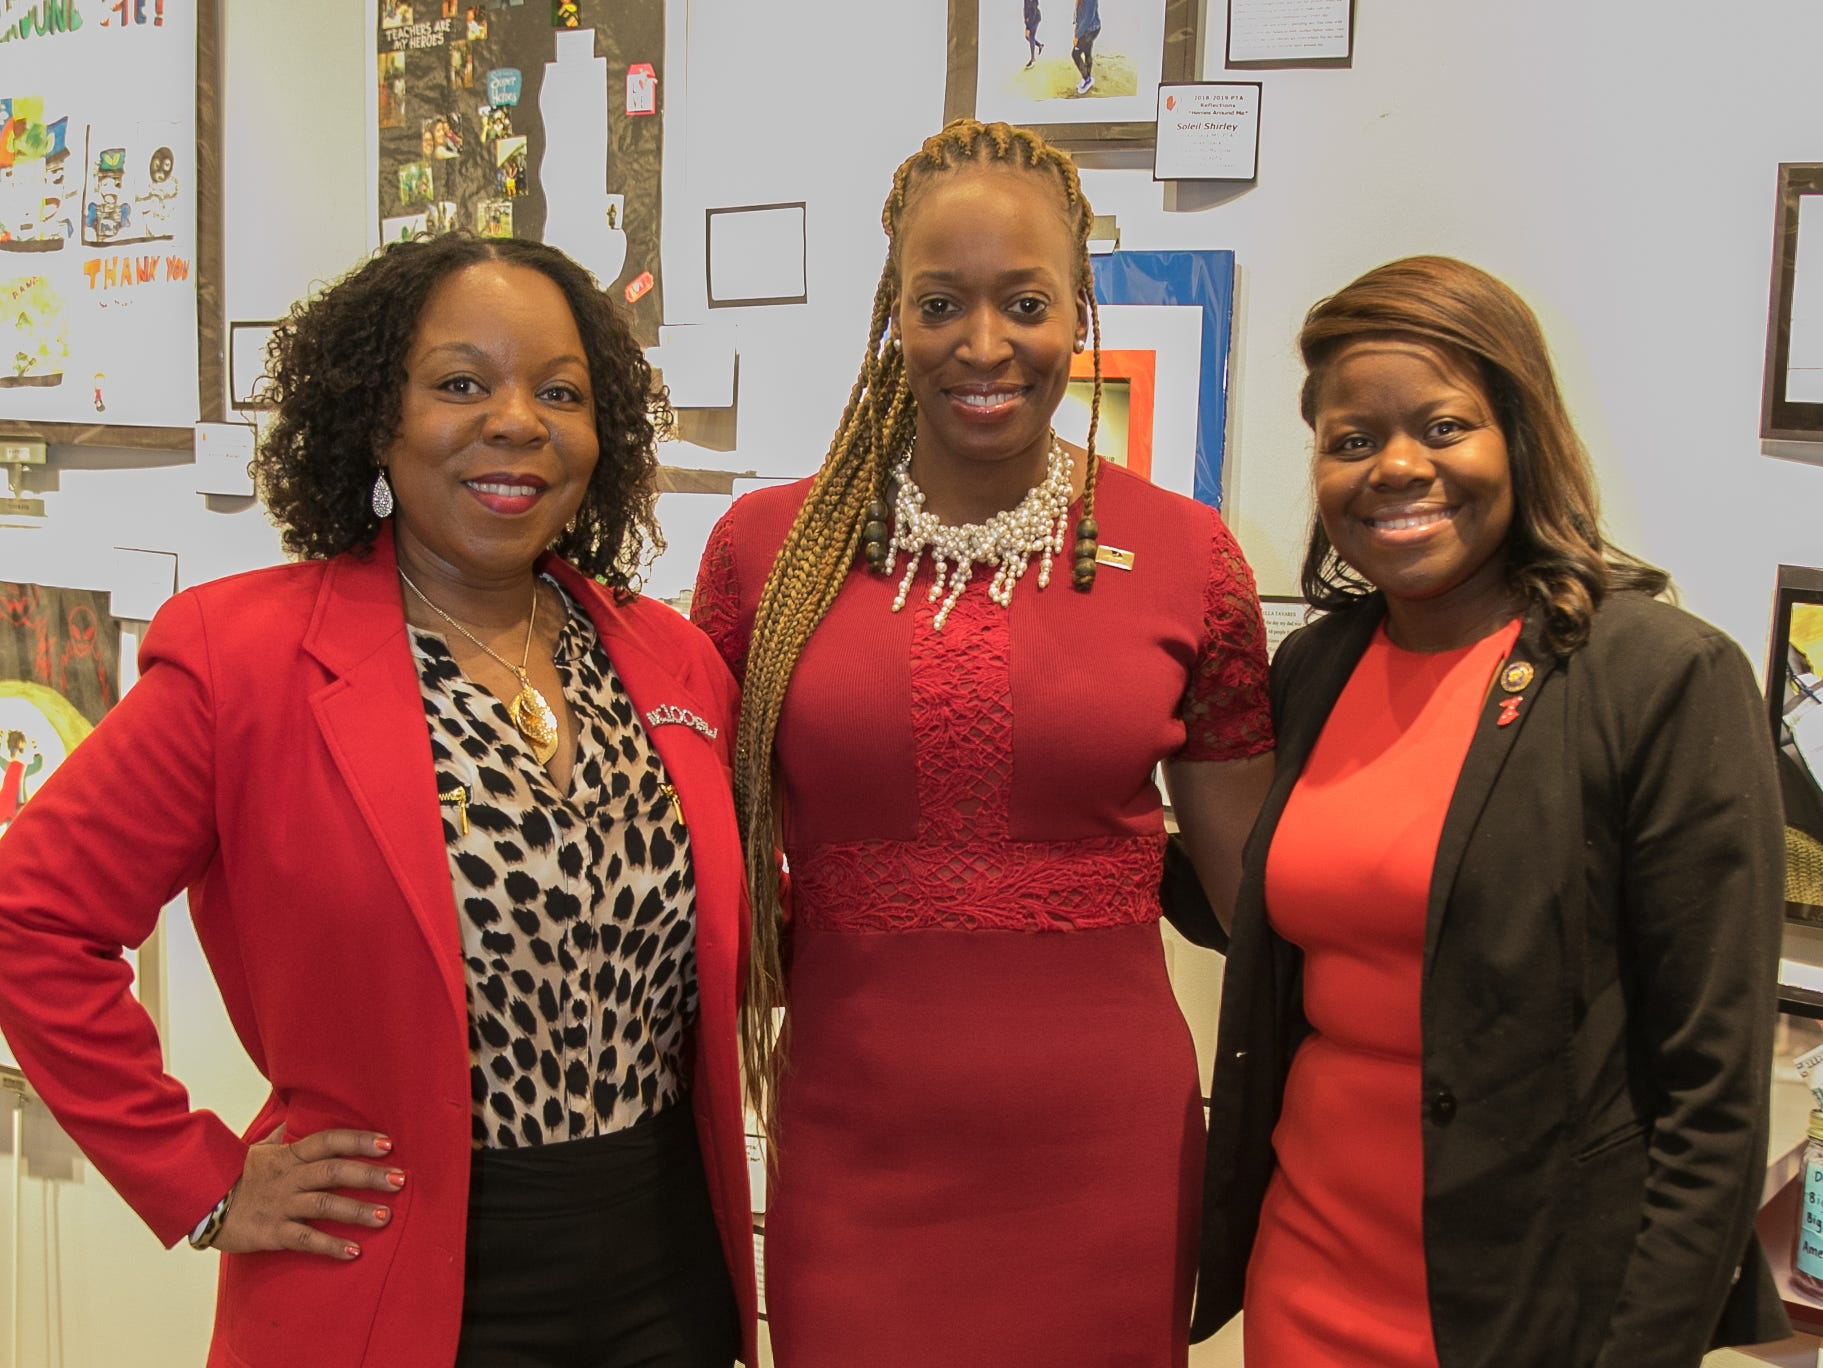 Jacqueline Ridley, Elizabeth Carter, and Jersey City Counsilwoman Denise Ridley. The National Coalition of Black Women of Bergen and Passaic Counties held its annual Heart Healthy Go Red Event at The Hackensack Performing Arts Theater. 02/01/2019